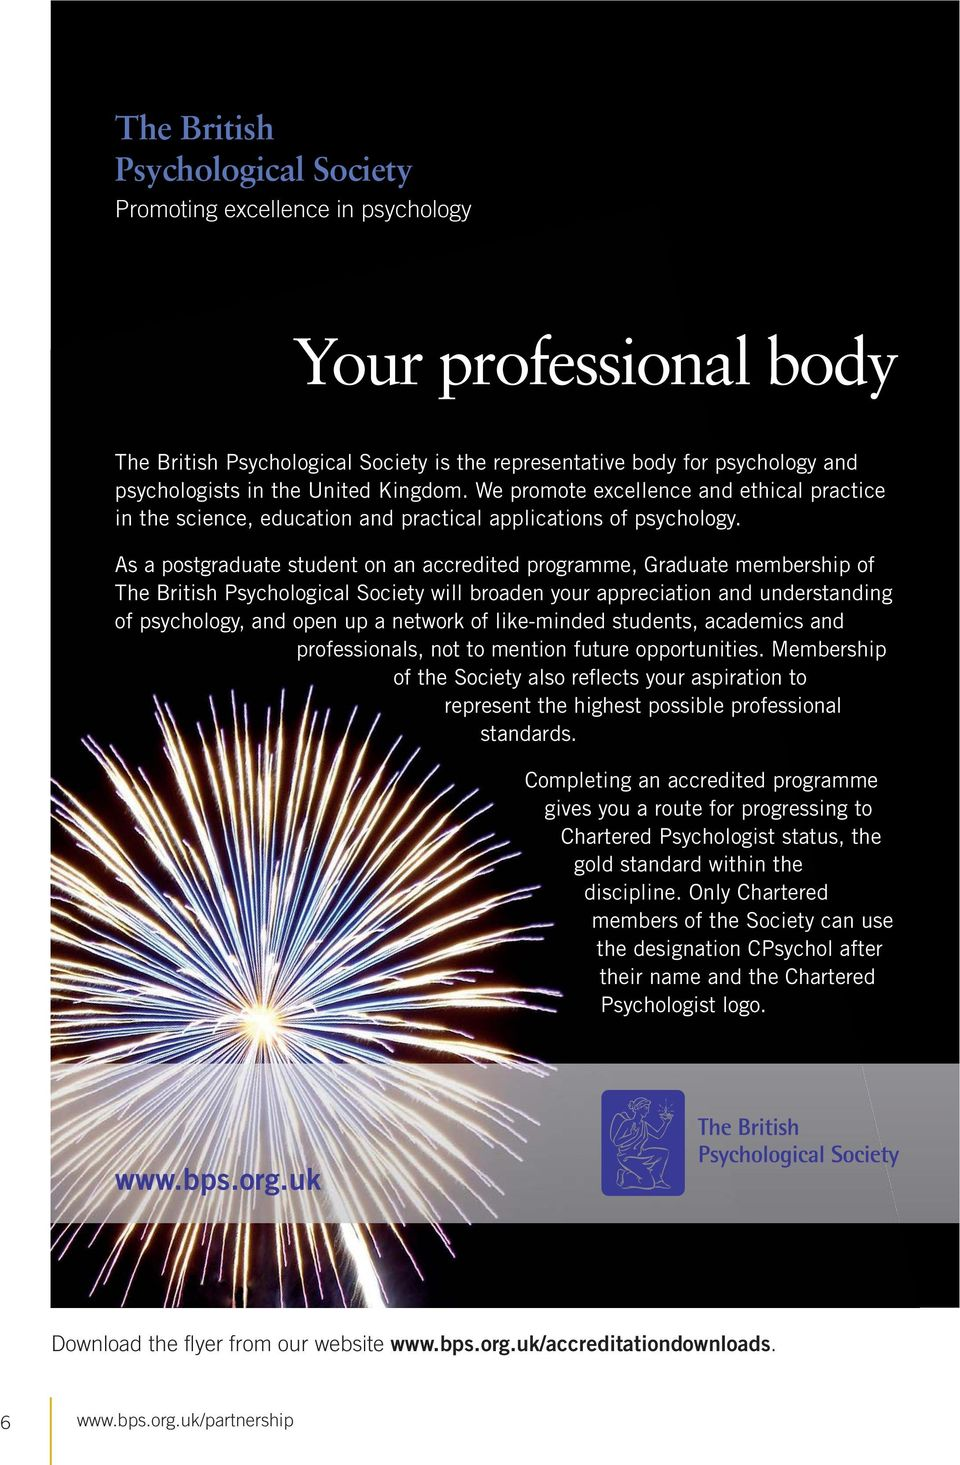 As a postgraduate student on an accredited programme, Graduate membership of The British Psychological Society will broaden your appreciation and understanding of psychology, and open up a network of